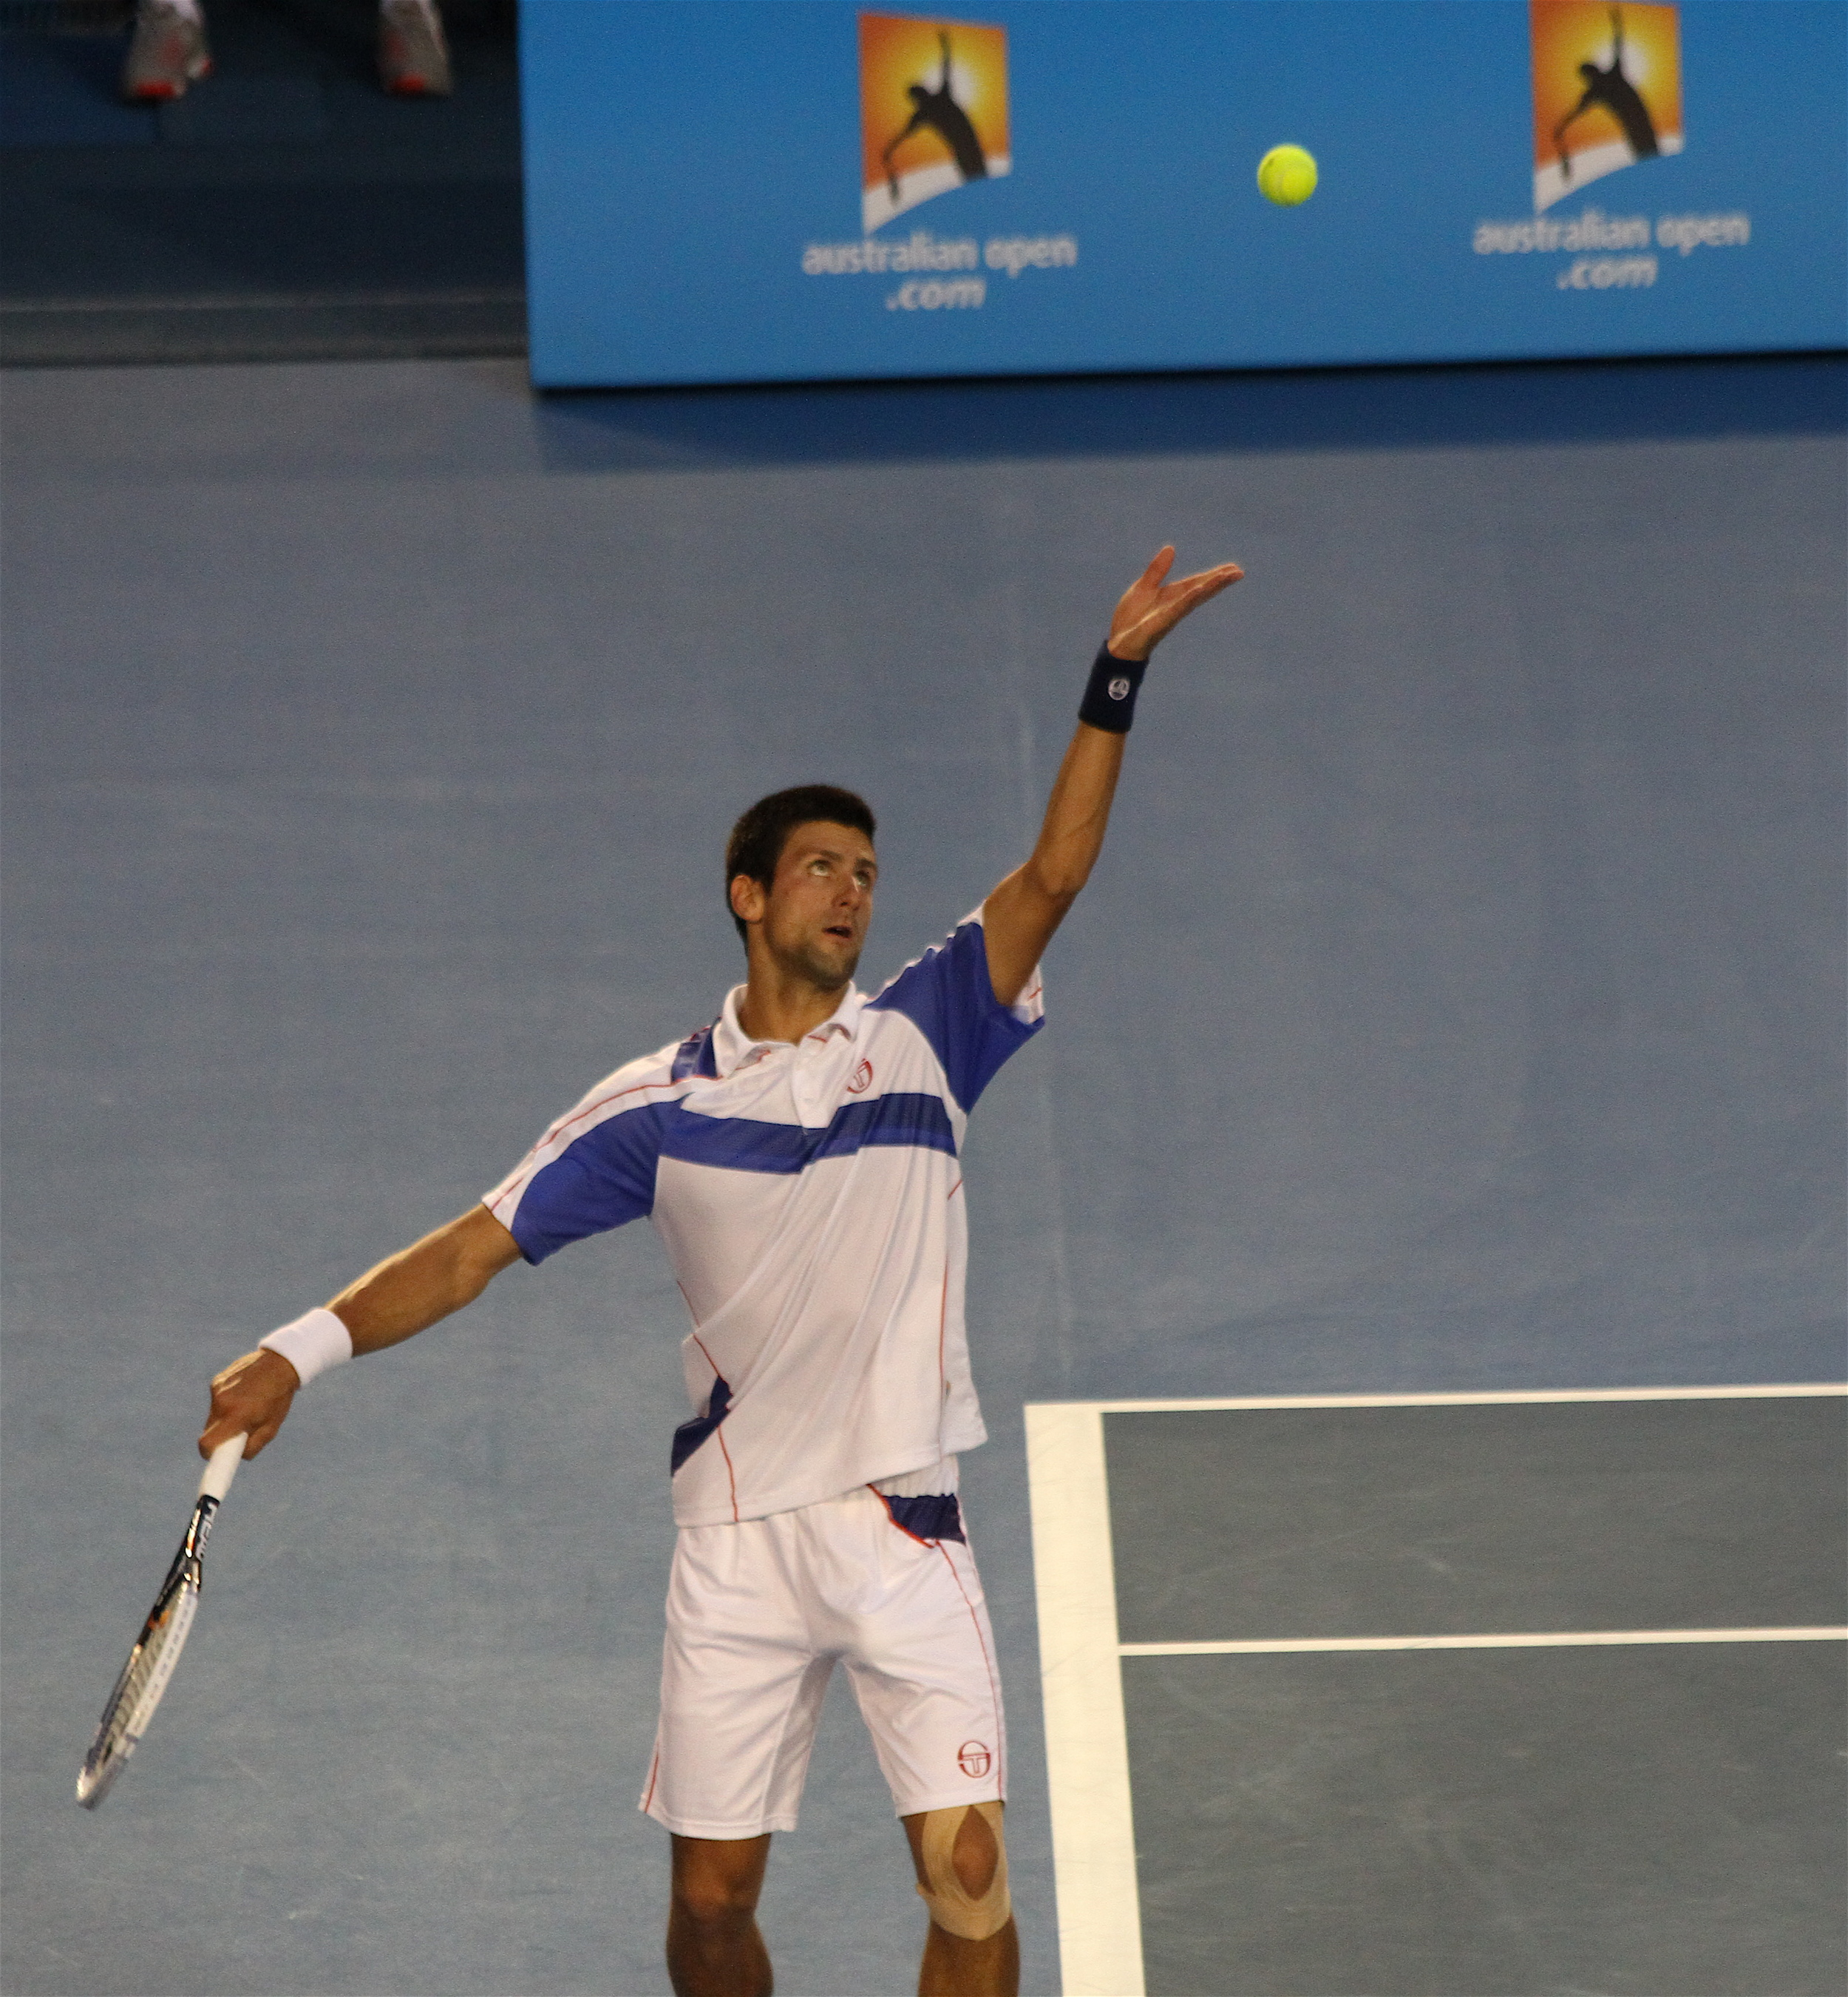 Novak Djokovic at the Australian Open in 2011. Will 2014 be another big year for Nole? Photograph by Christopher Johnson.